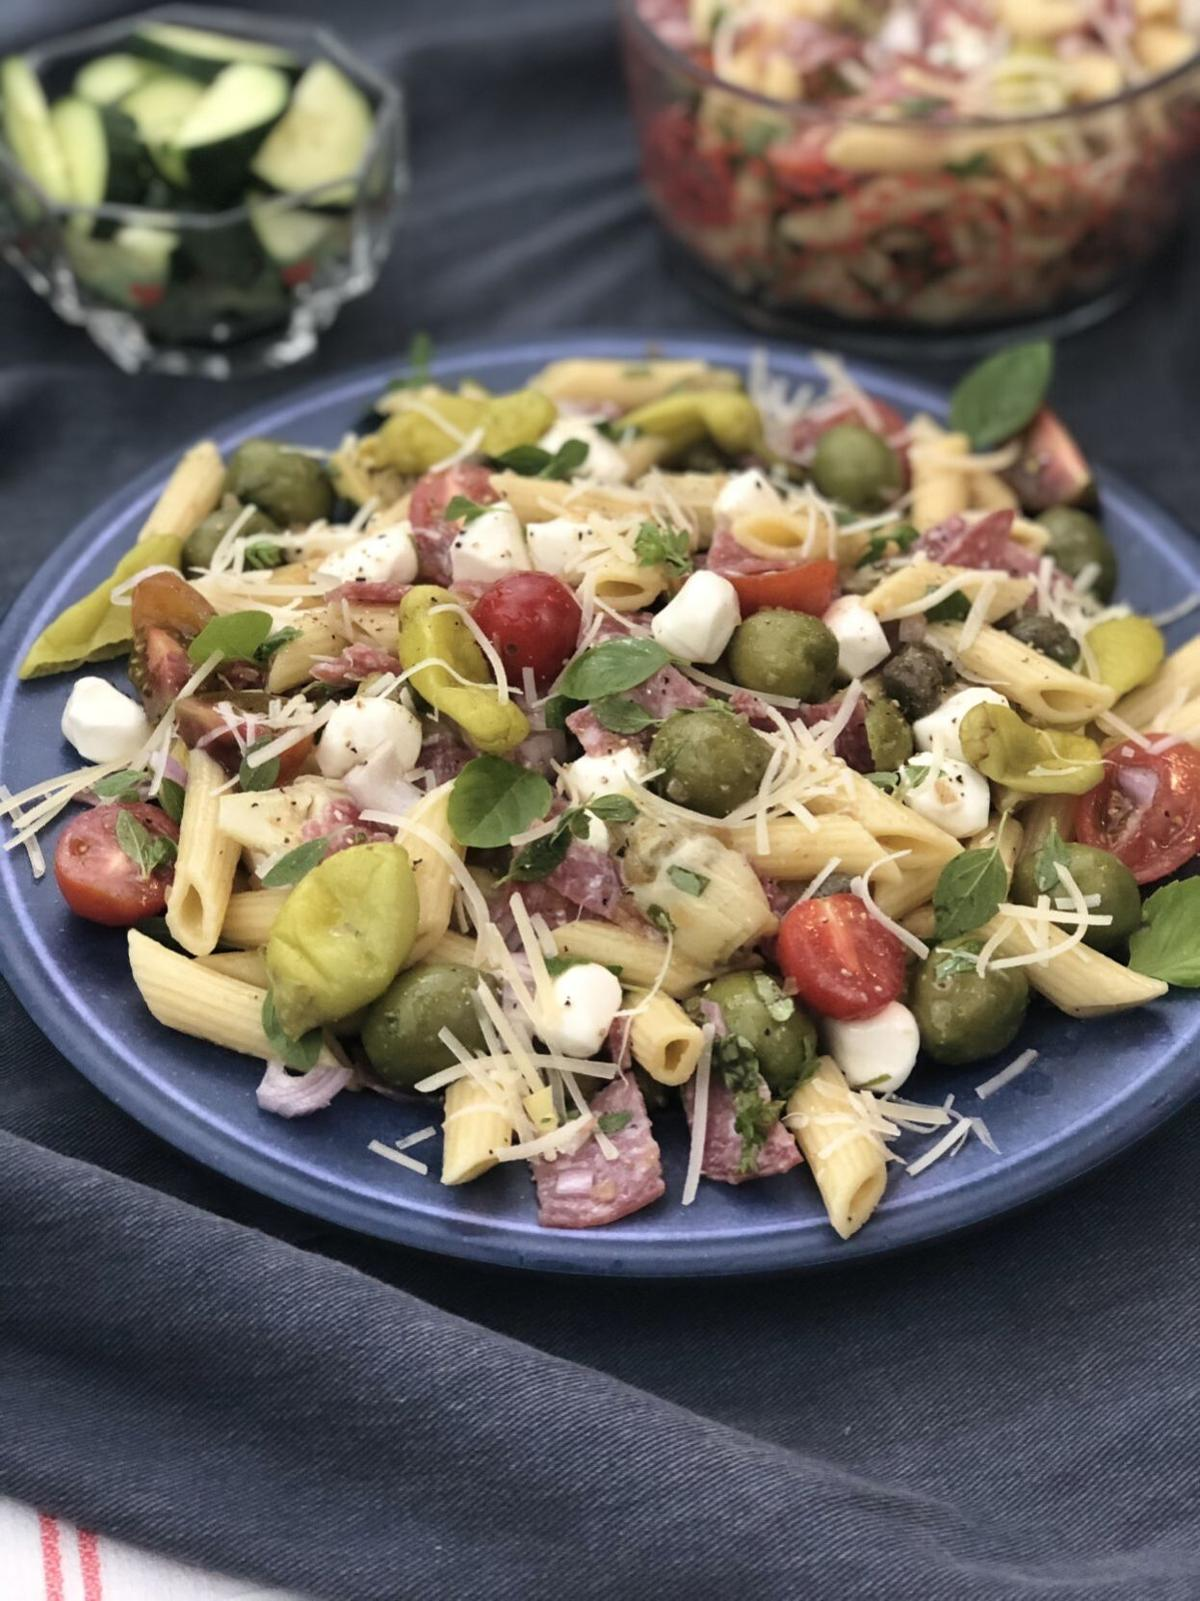 Antipasto-inspired Pasta Salad